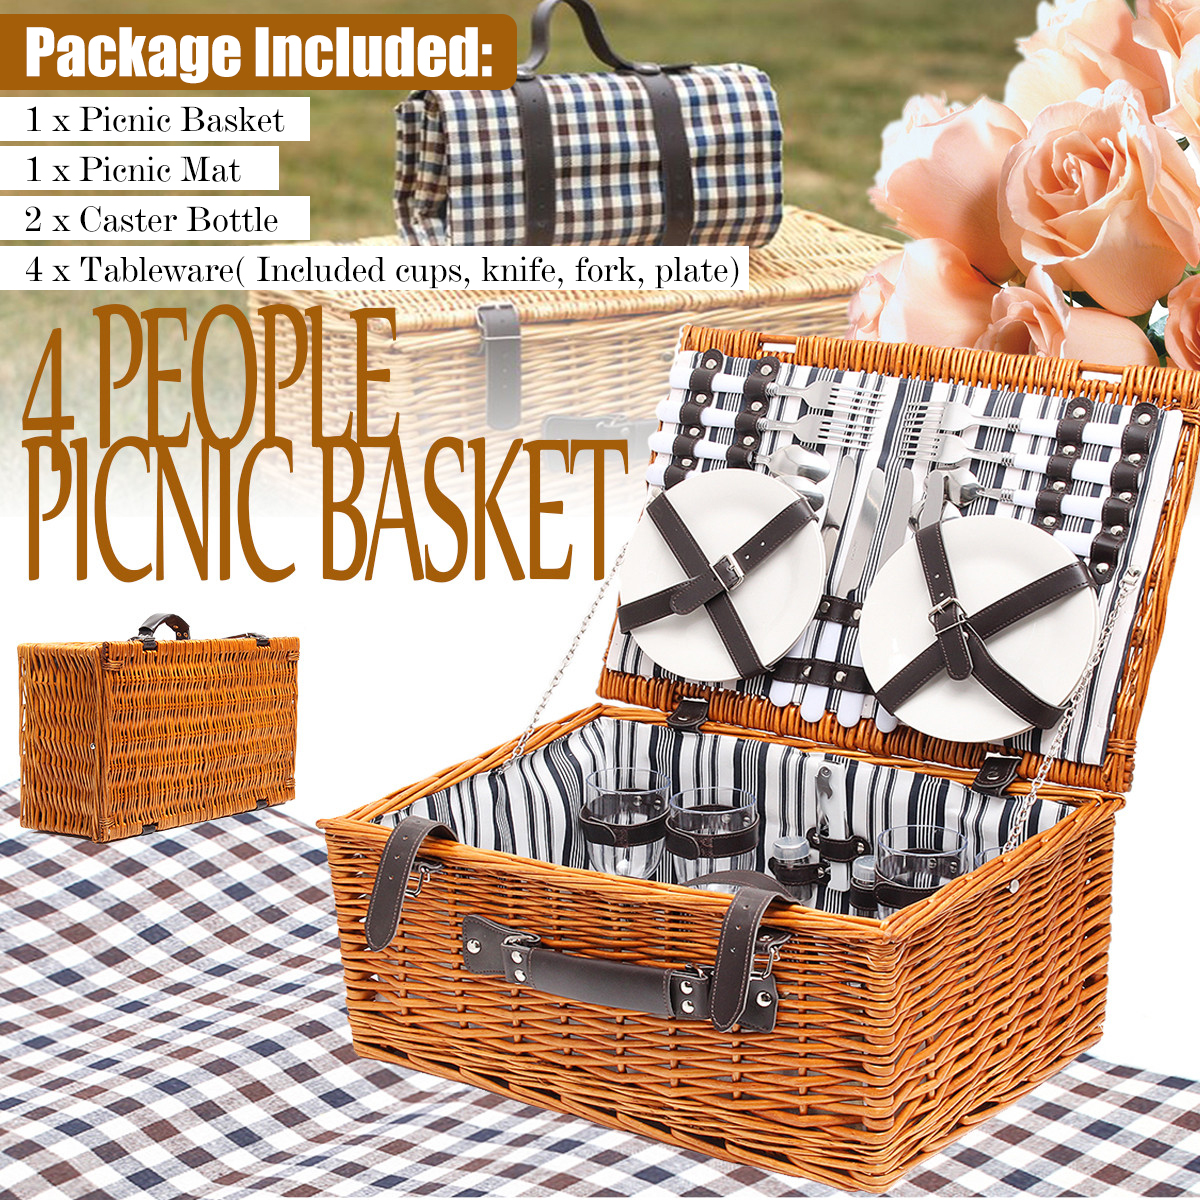 NEW 4 Person Picnic Basket Baskets Set Insulated Mat Blanket Park Strong Wicker Hiking Outdoor